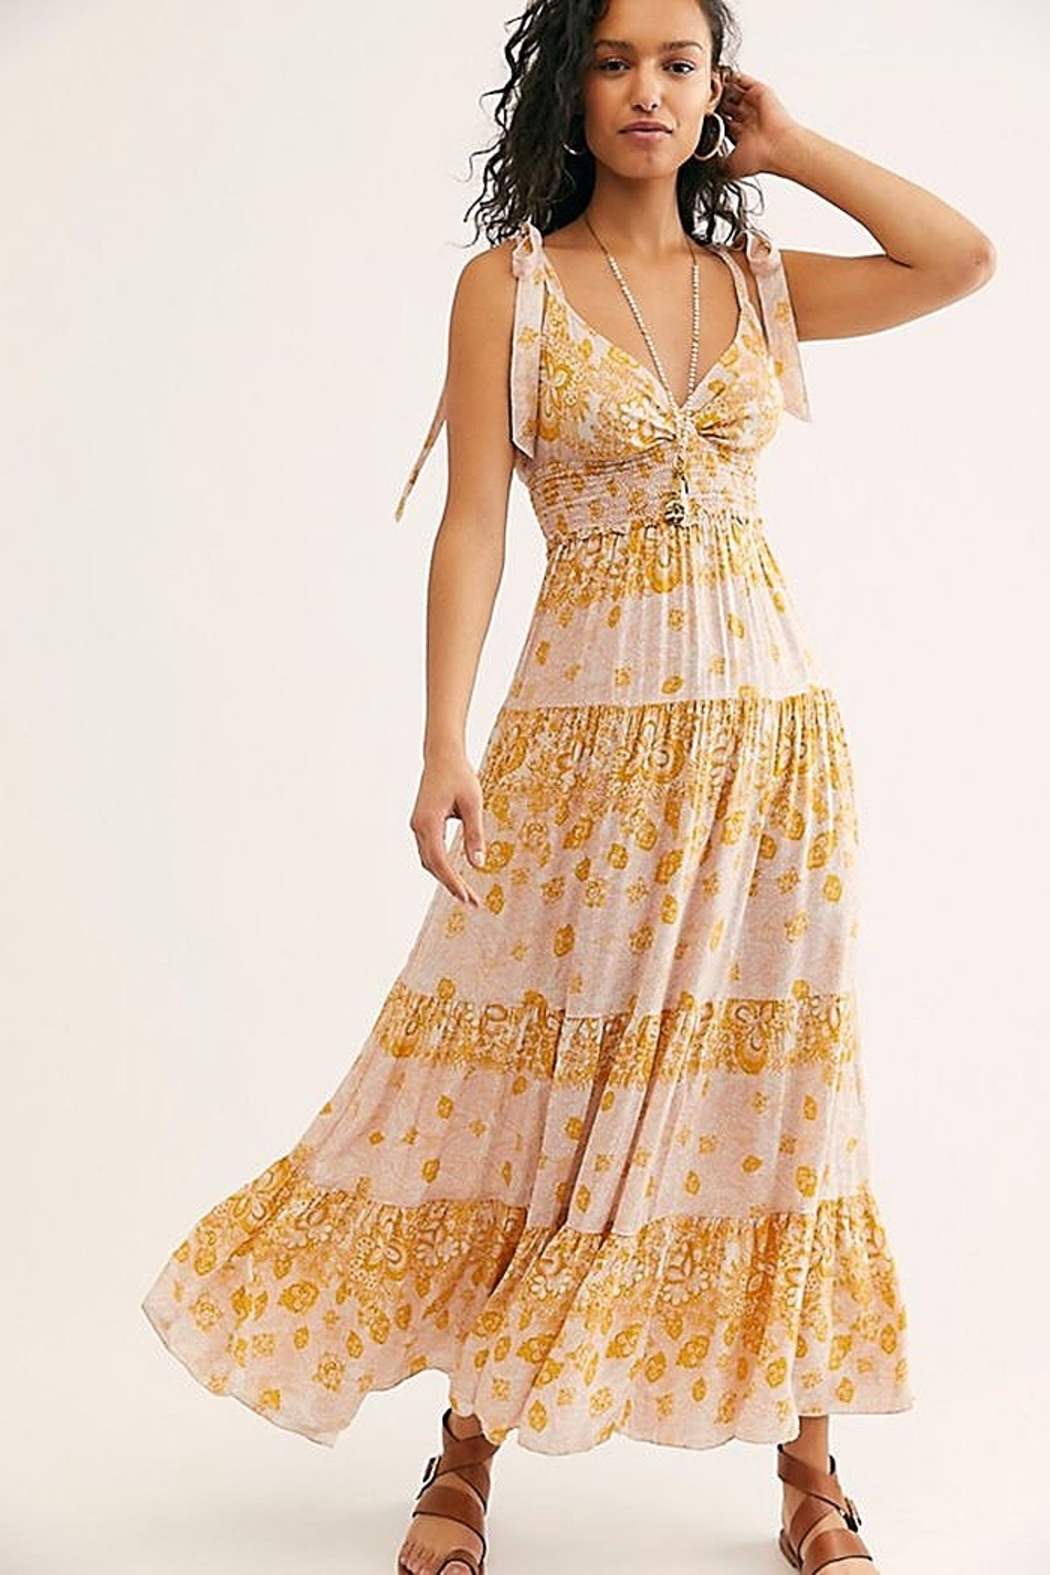 Free People Let's Smock About It Maxi - Main Image